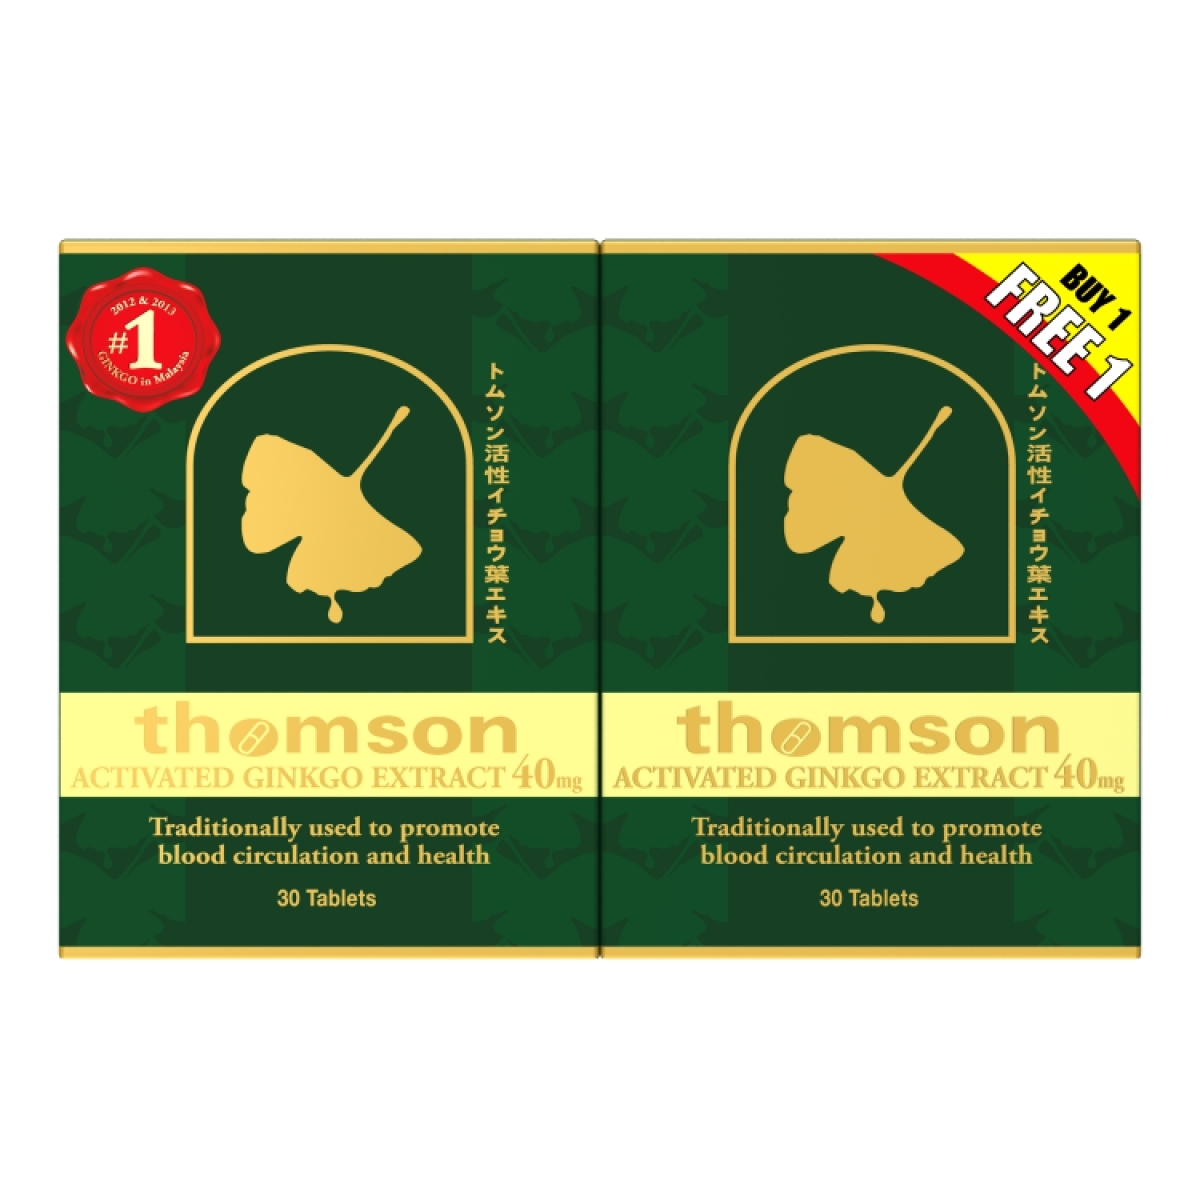 Thomson Activated Ginkgo Extract 40mg - 30 tabs (Buy 1 Free 1)